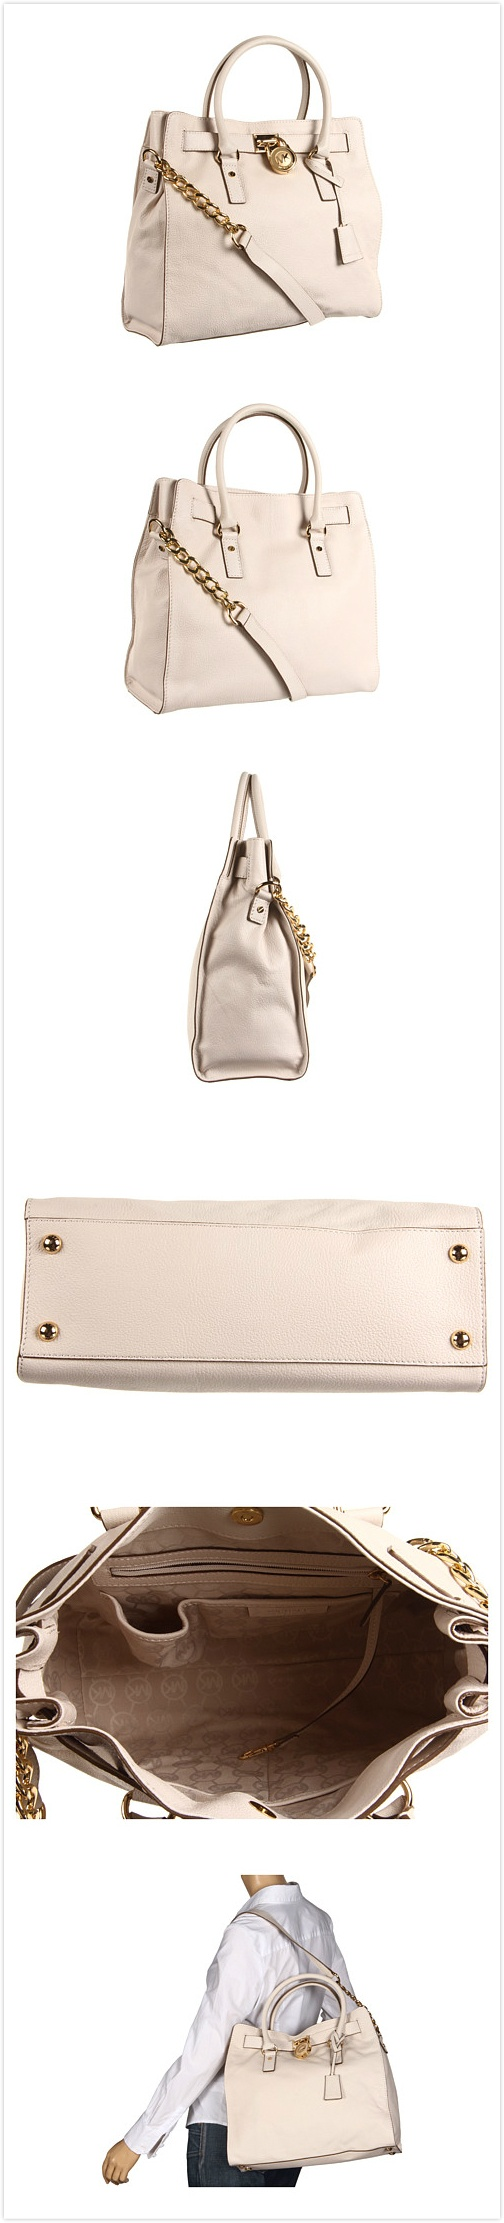 Love this new Michael Kors bag even though I'm pretty sure it's fake.